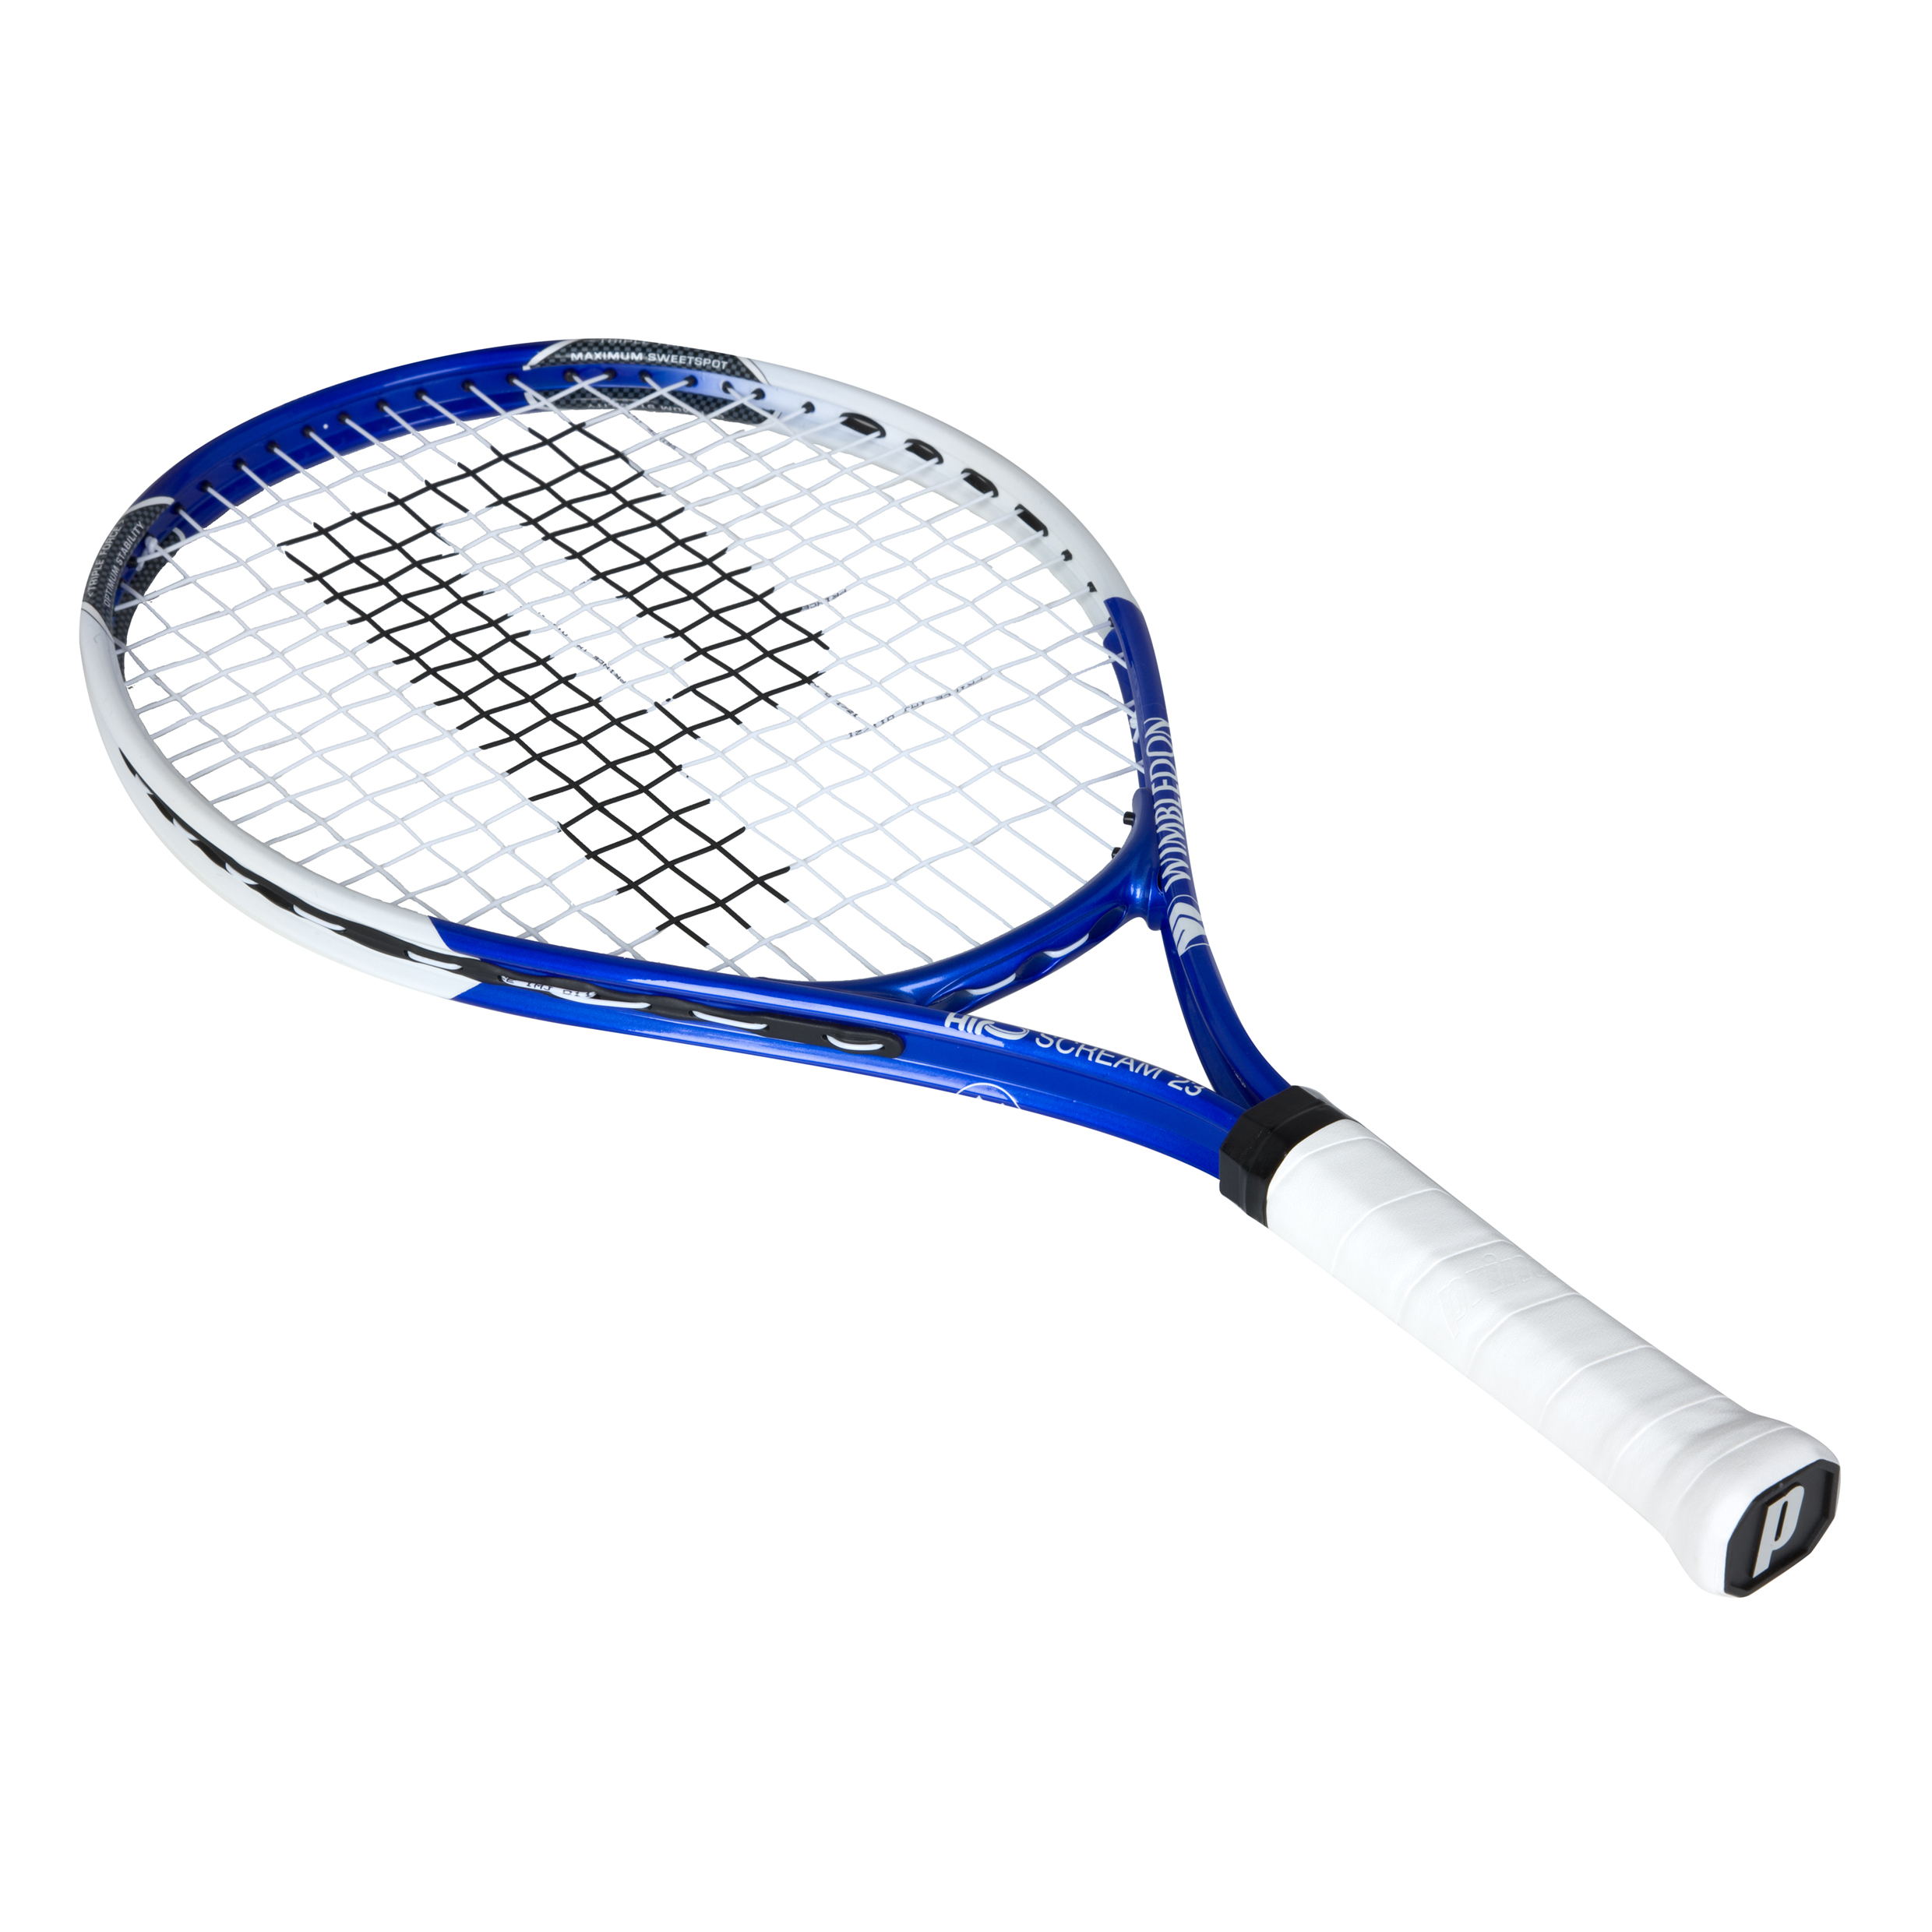 Wimbledon By Prince Airo Scream 23 Tennis Racket - Blue/White